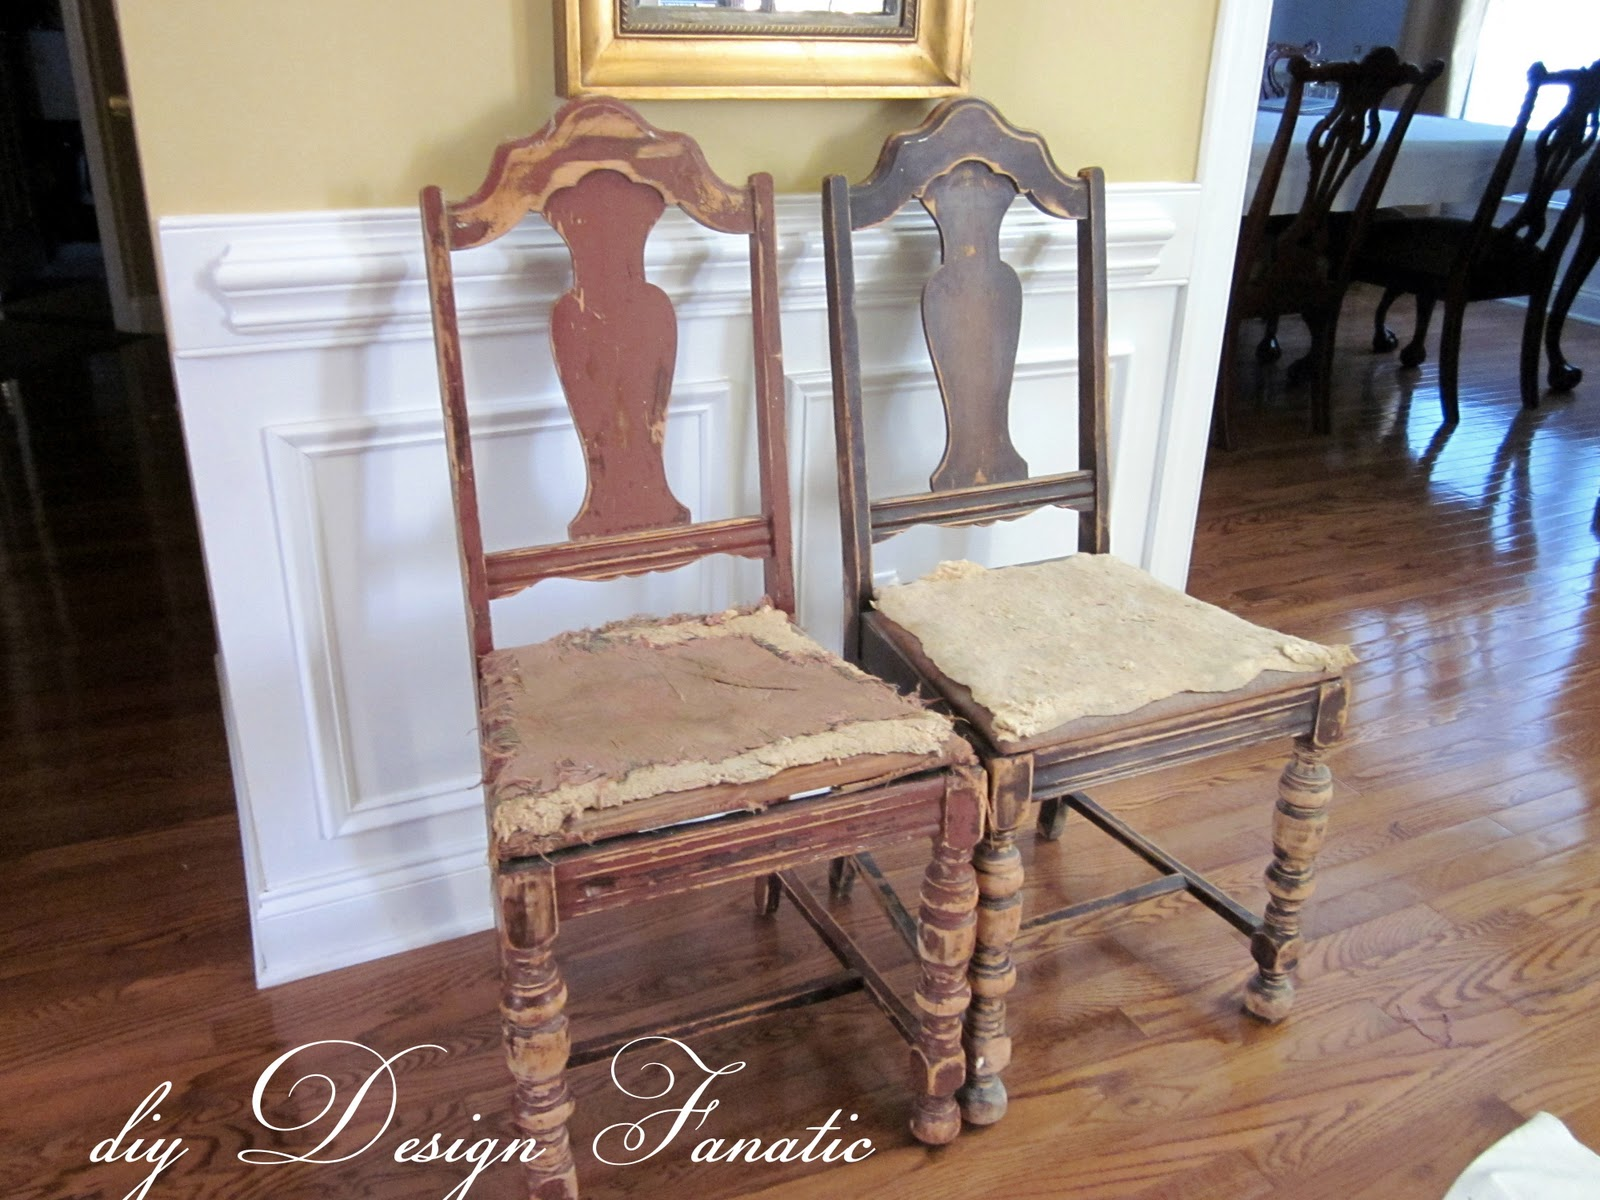 Diy Design Fanatic Do It Yourself Project Antique Chair